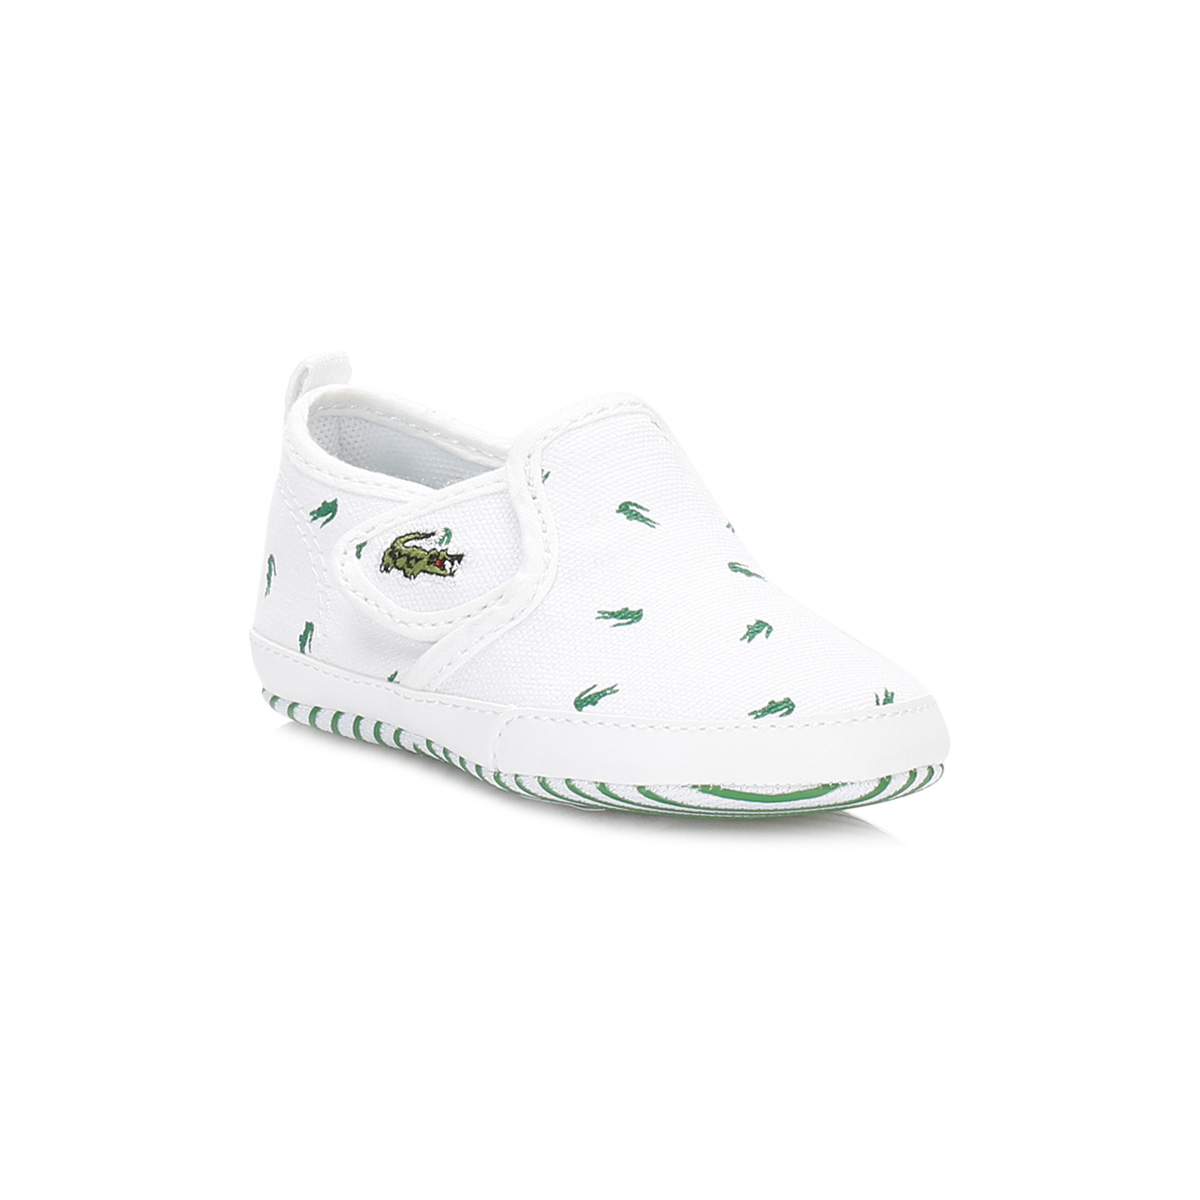 Lacoste Kids Boys Girls Trainers White Canvas Gazon Crib ...